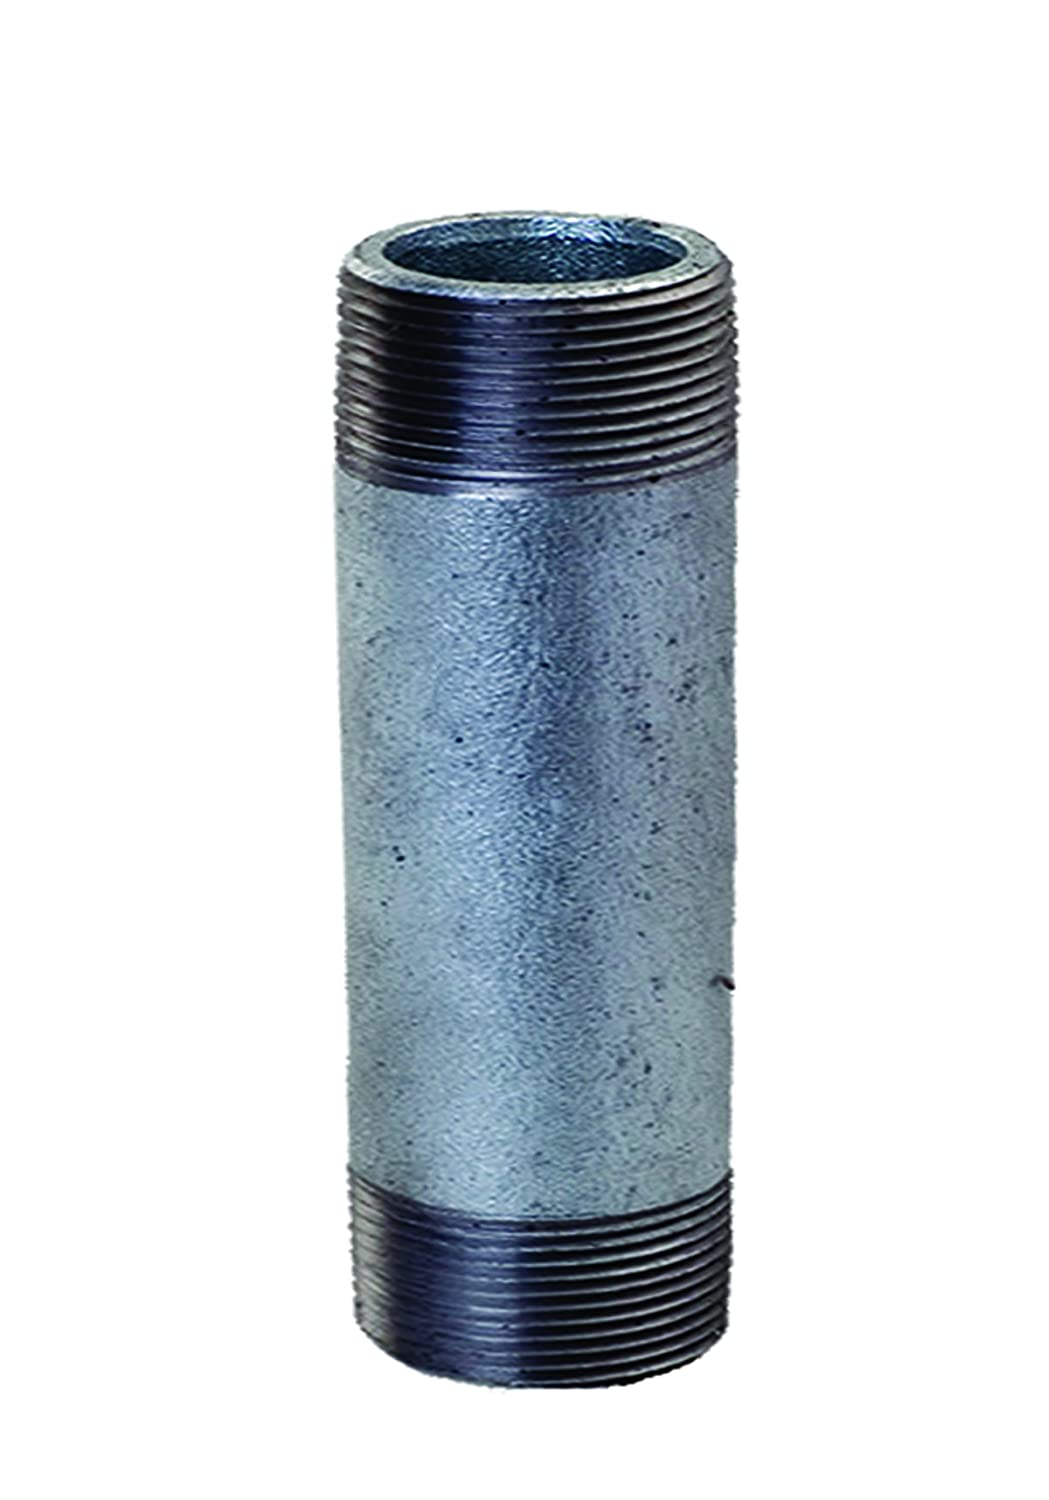 Everflow Supplies NPGL3512 12 Long Galvanized Steel Nipple Pipe Fitting with 3-1//2 Nominal Size Diameter